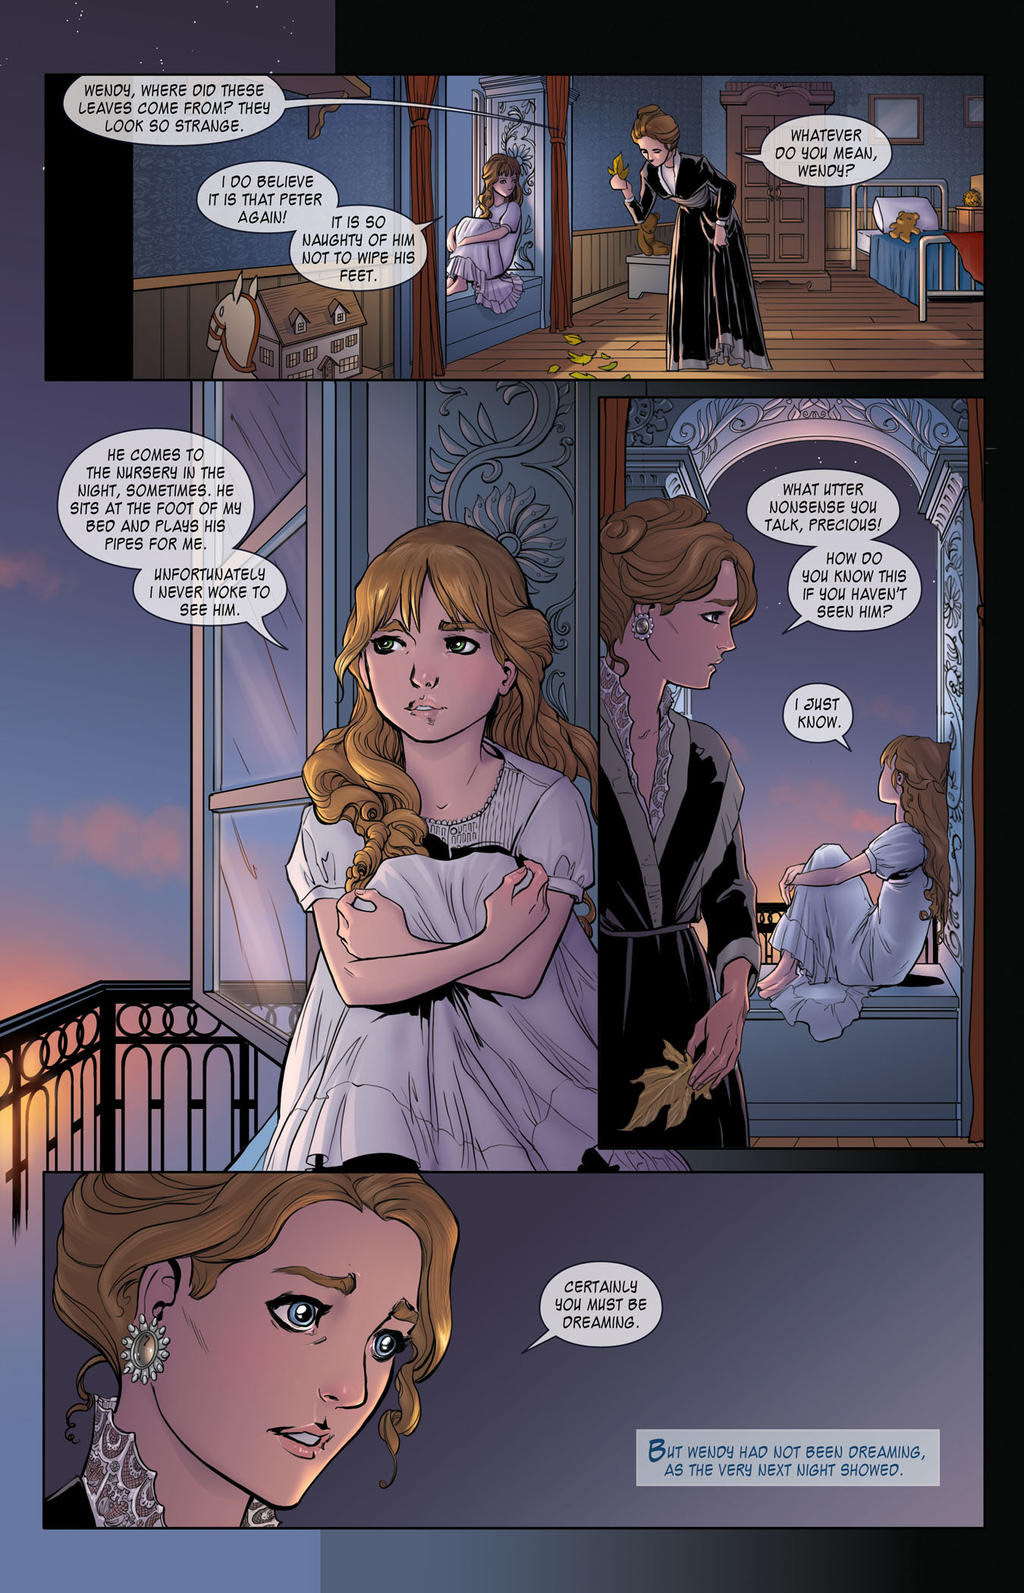 Once Upon A Time Peter Pan And Wendy Love Story Archidev